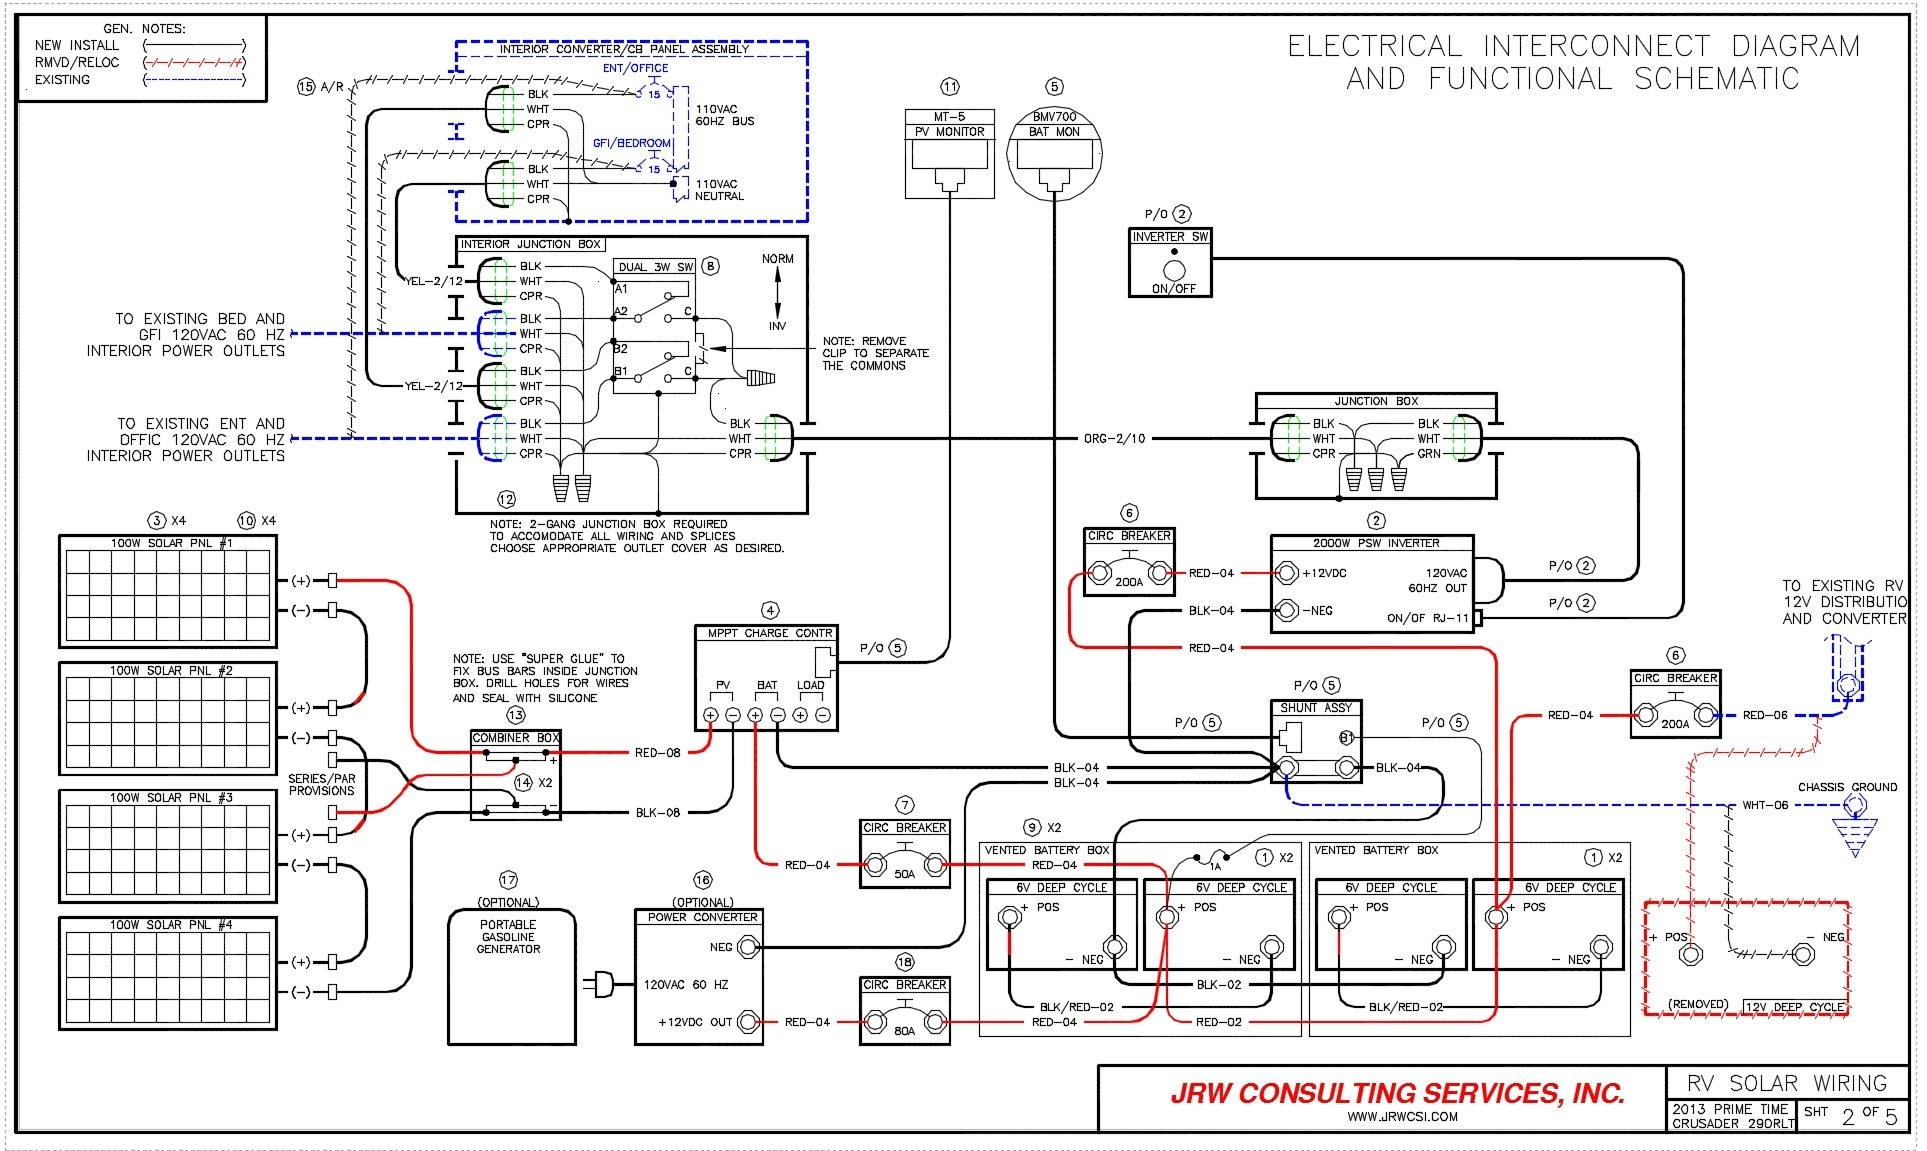 Travel Trailer Wiring Schematic - Nissan An Trailer Wiring Harness for Wiring  Diagram SchematicsWiring Diagram Schematics